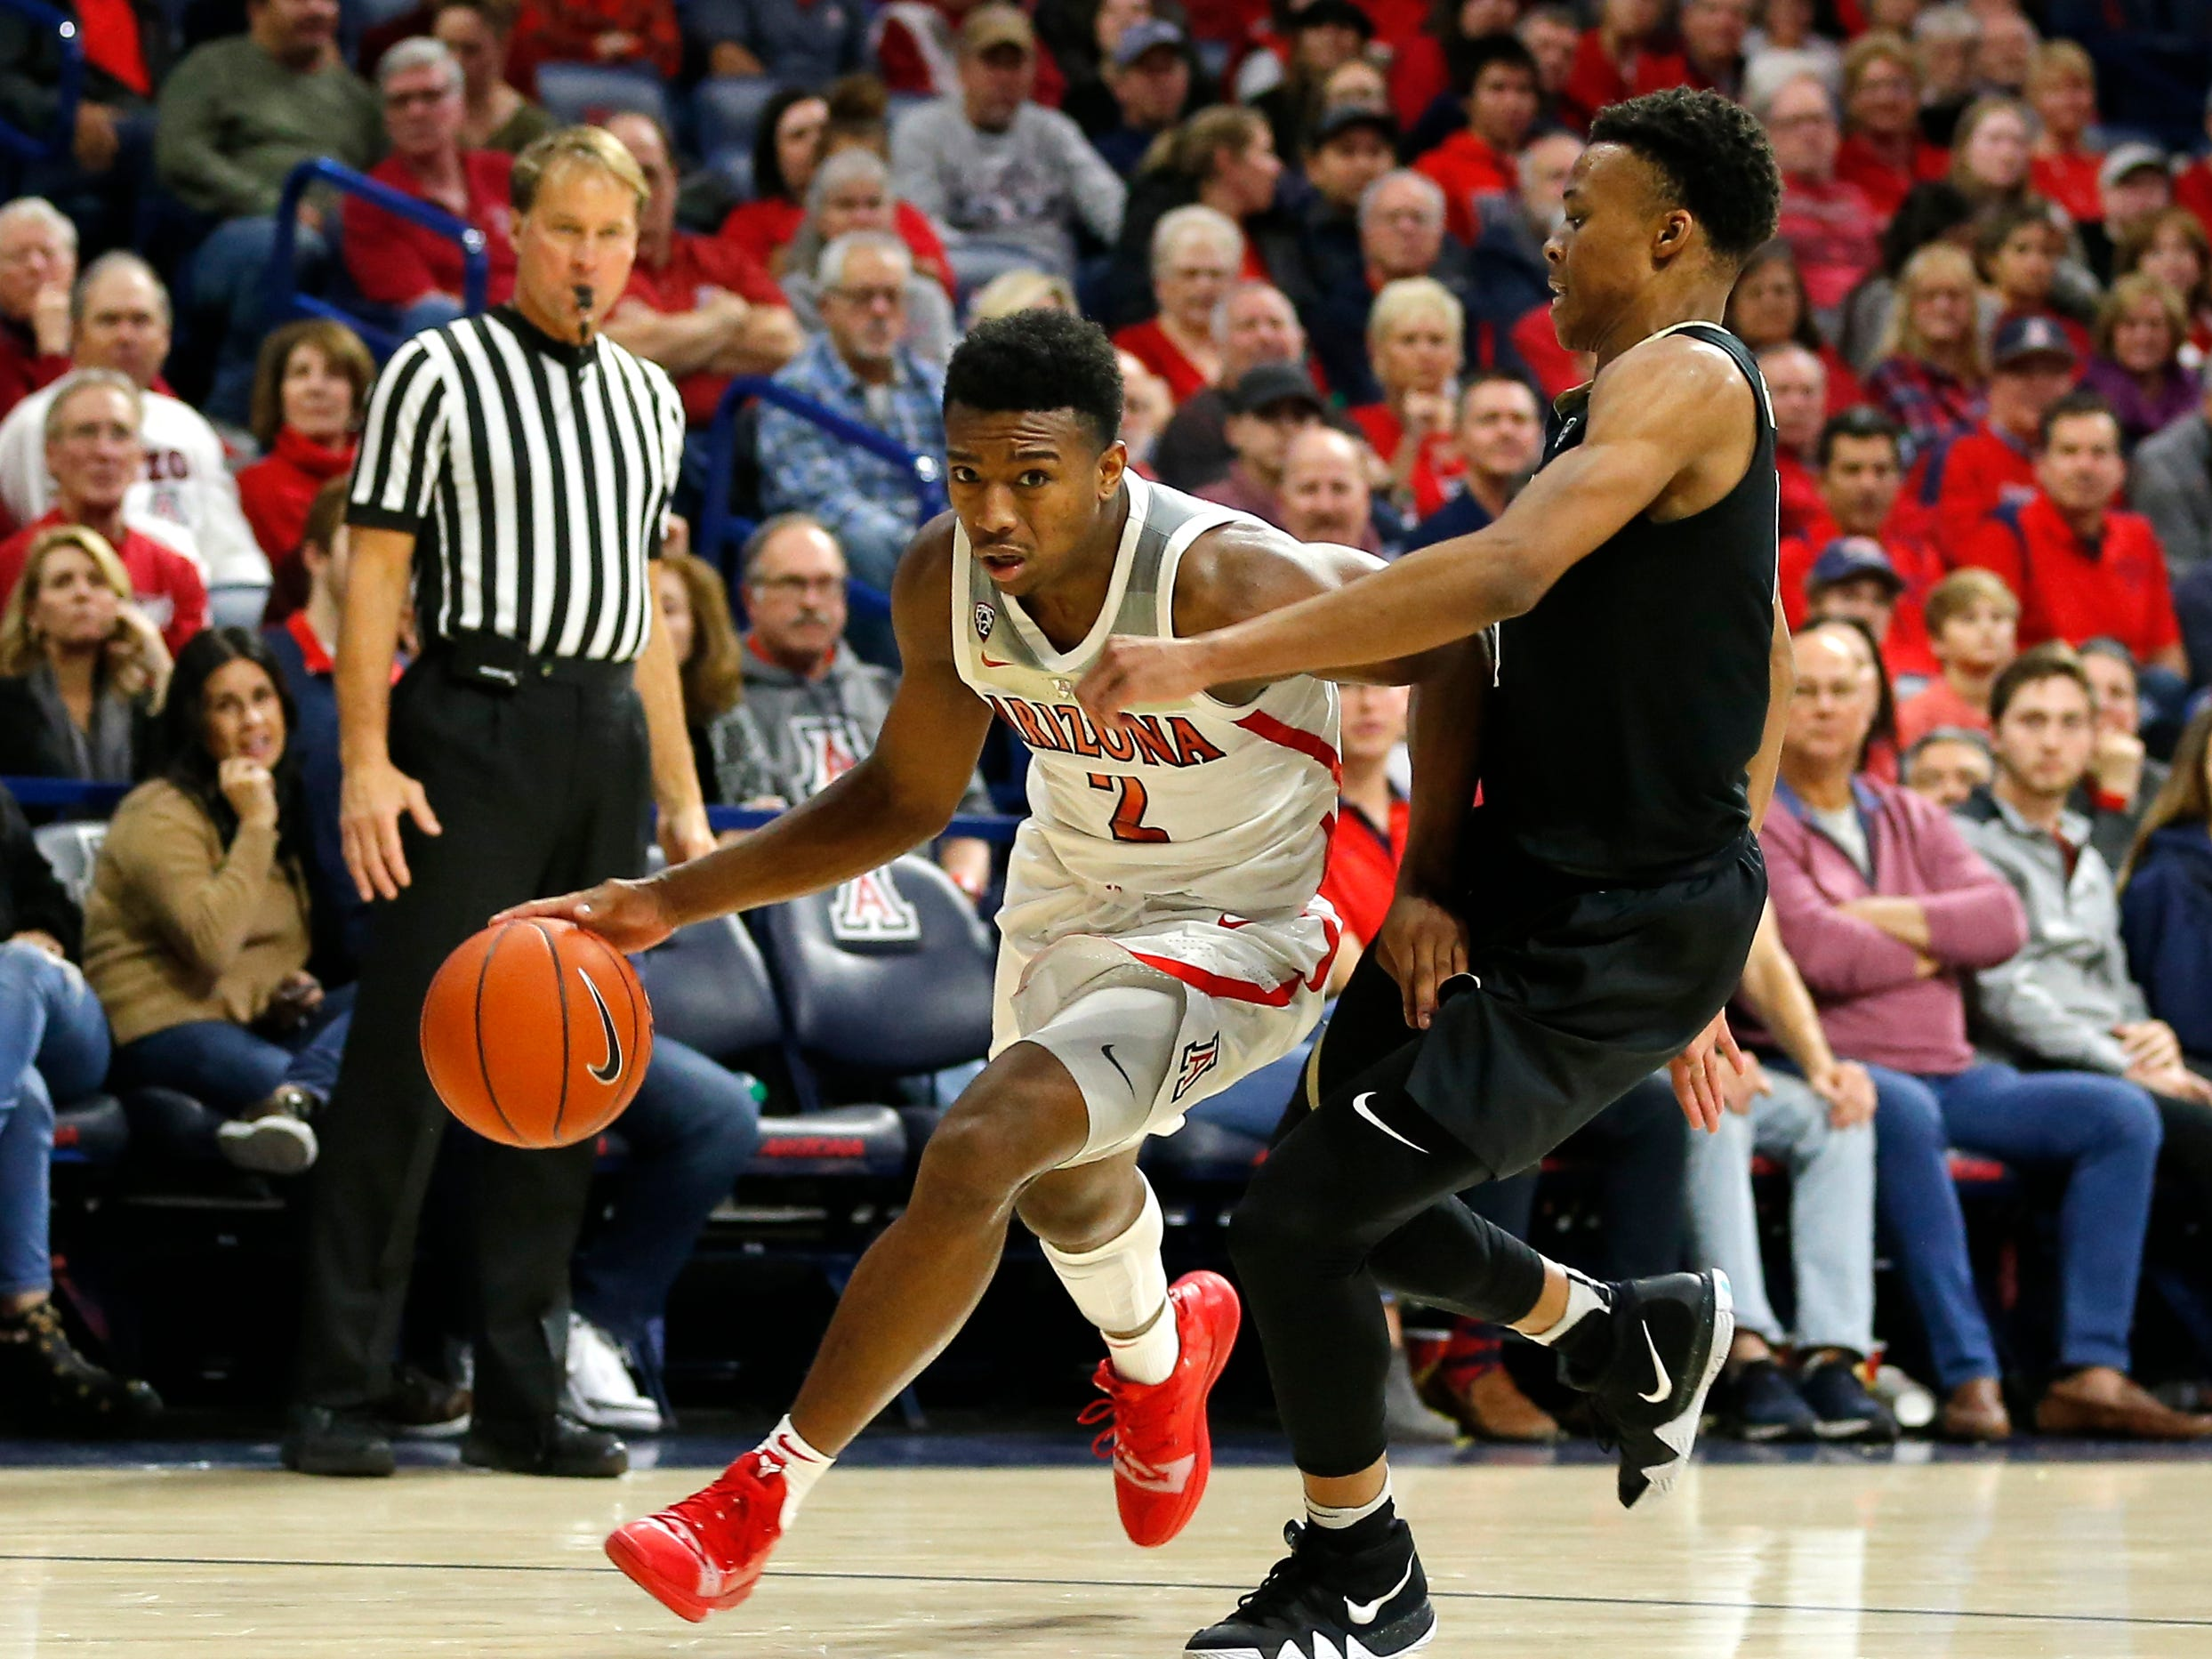 Arizona guard Brandon Williams (2) in the first half during an NCAA college basketball game against Colorado, Thursday, Jan. 3, 2019, in Tucson, Ariz. (AP Photo/Rick Scuteri)